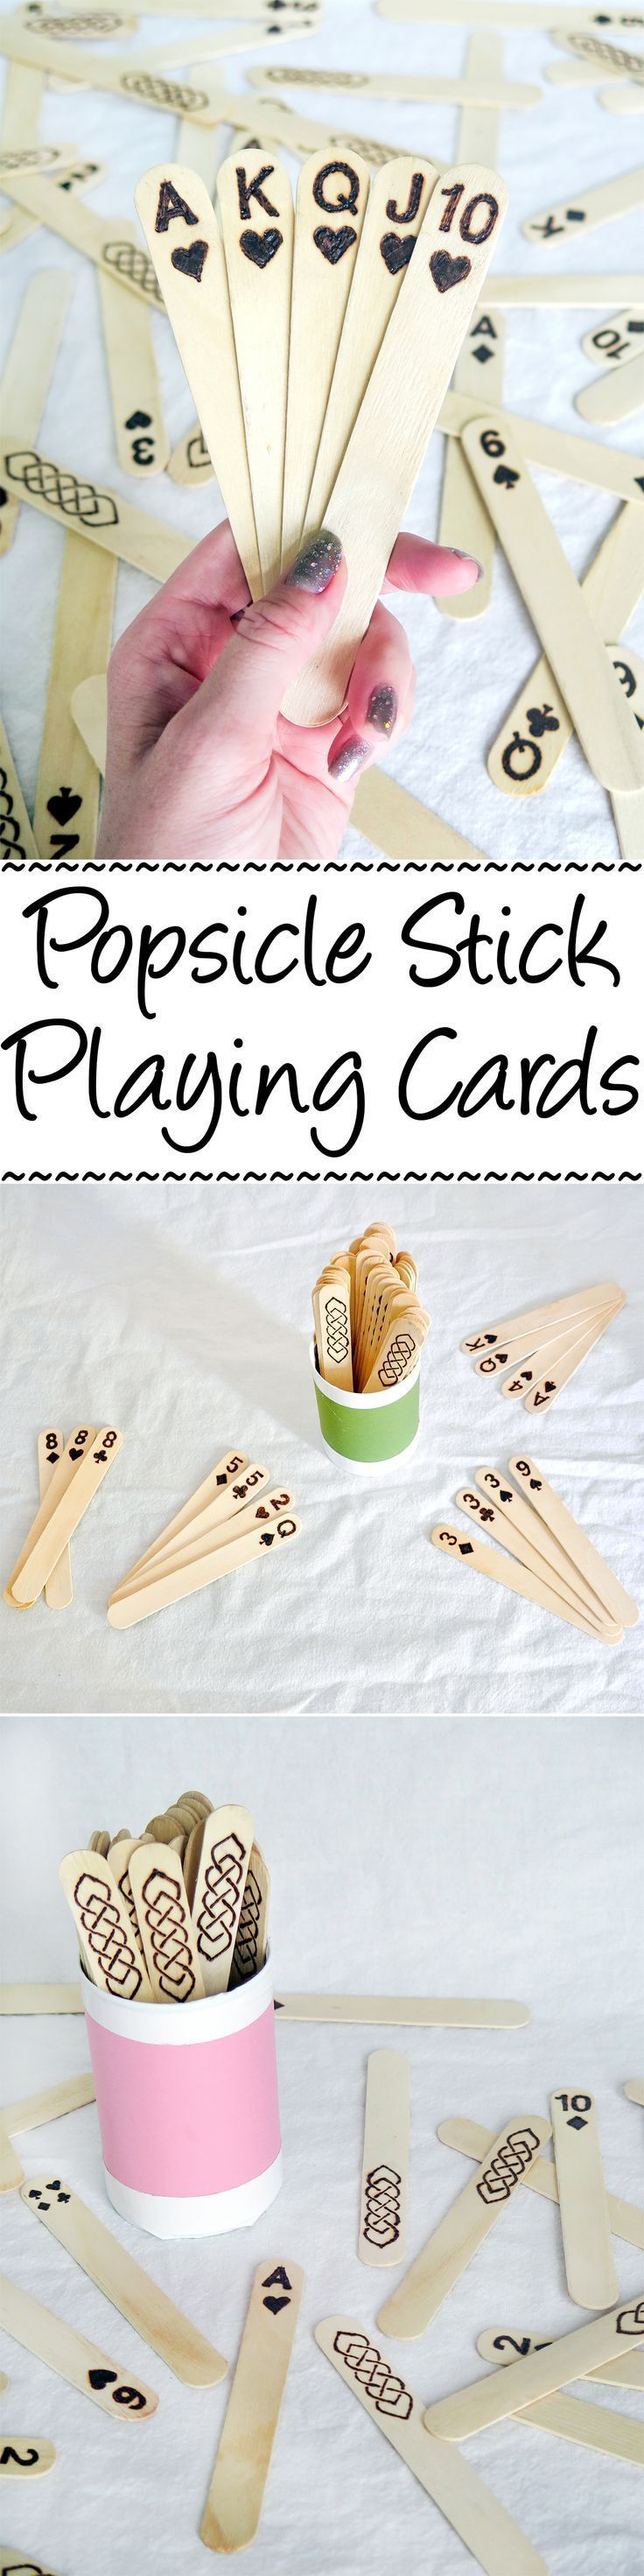 Cute idea using ice lolly stocks to create playing cards! - Upcycling - recycling - Kids Crafts - SImple Crafts - Easy Crafts - Cool Idea - Inspiration